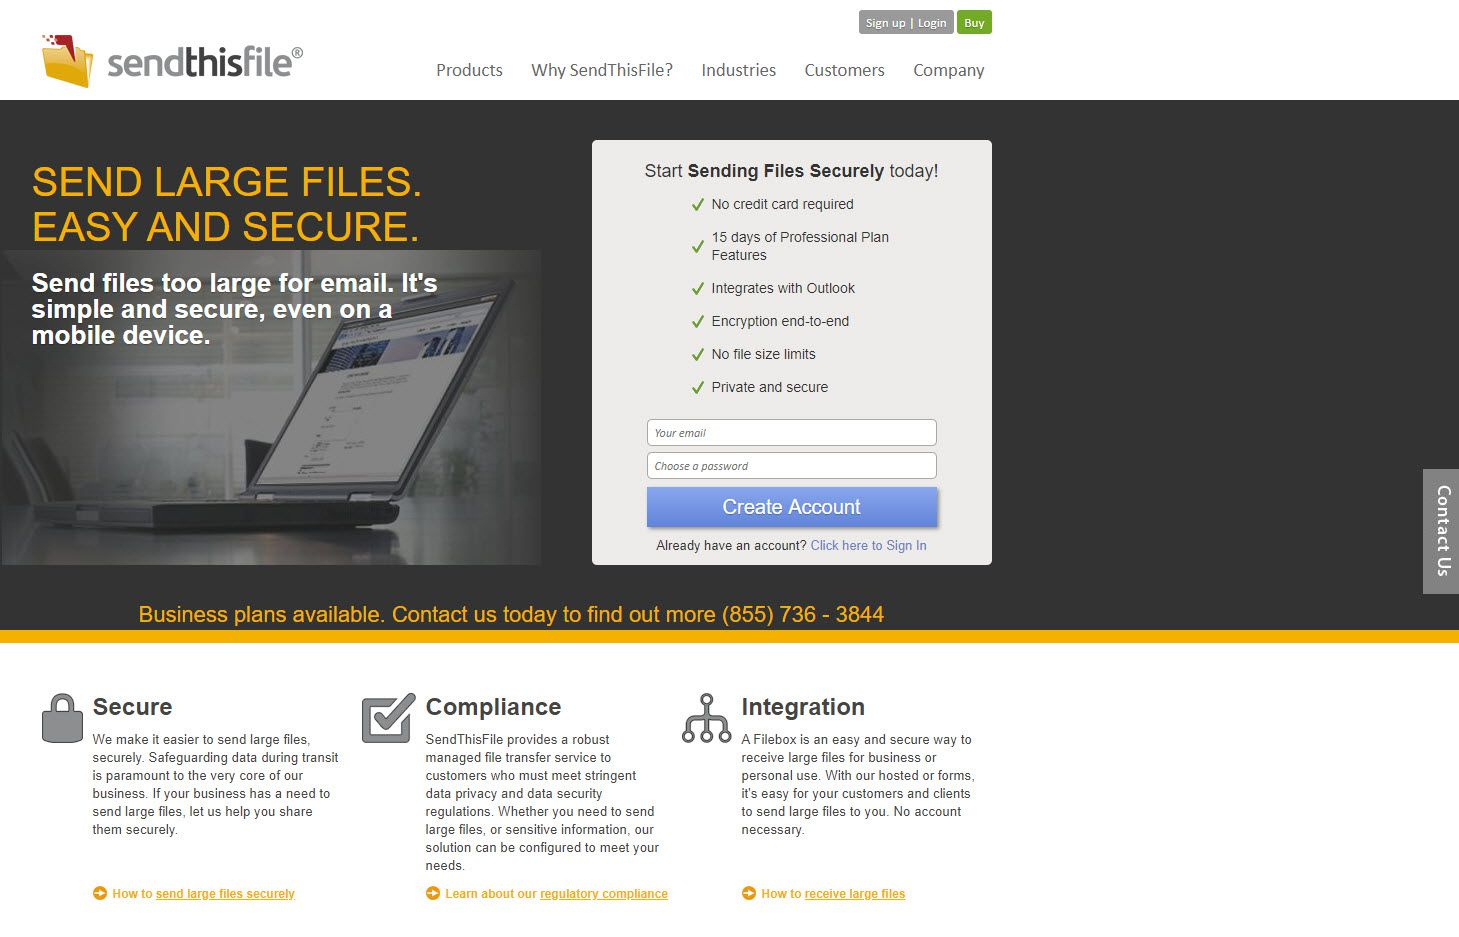 A screenshot of the SendThisFile website.